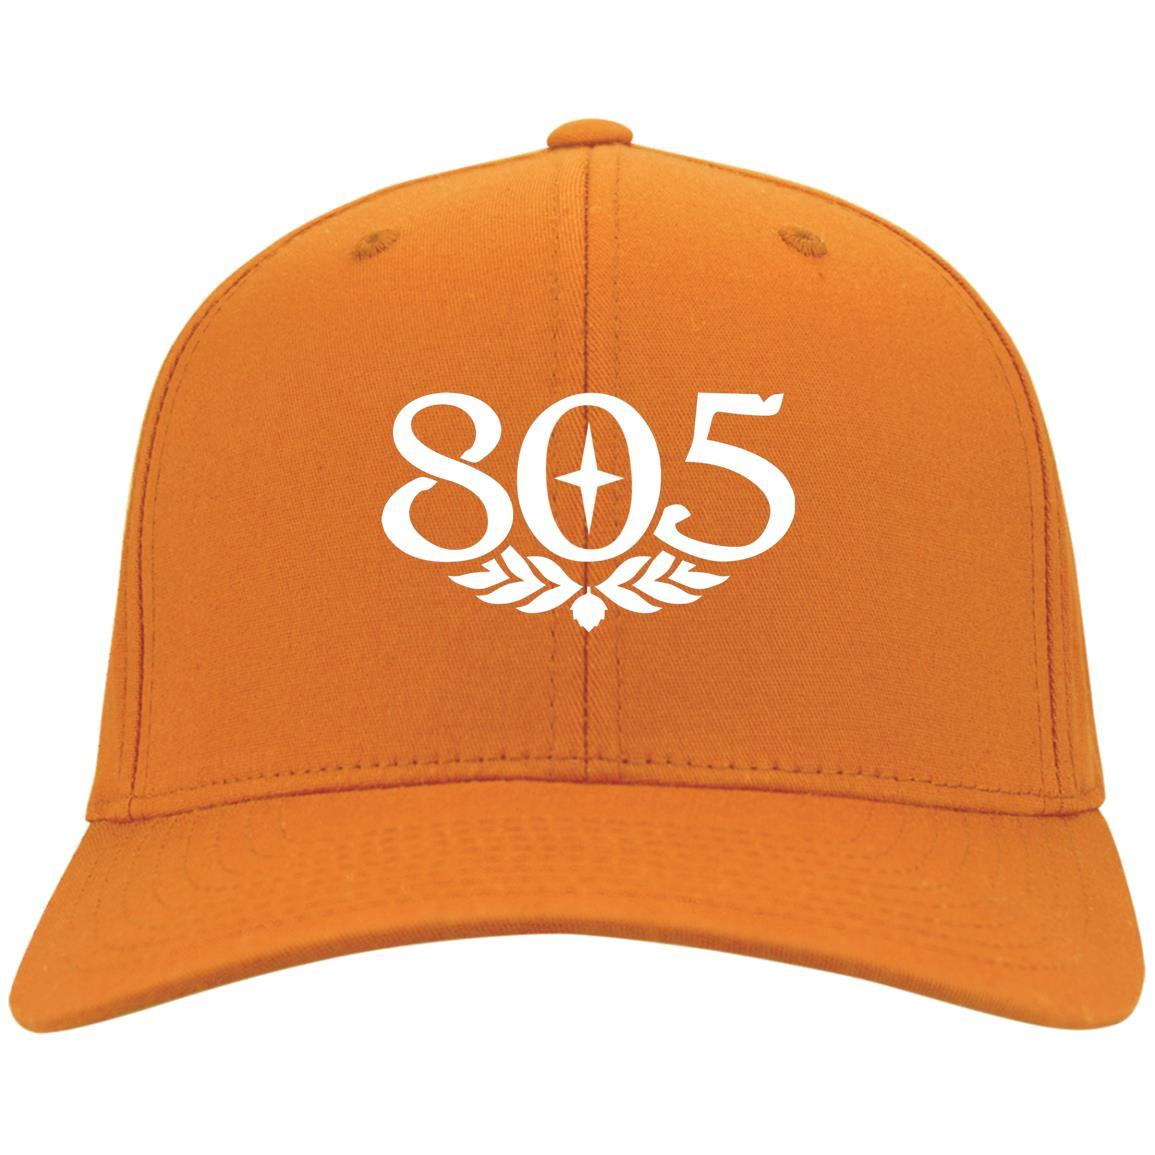 805 Beer - Port & Co. Twill Cap Orange